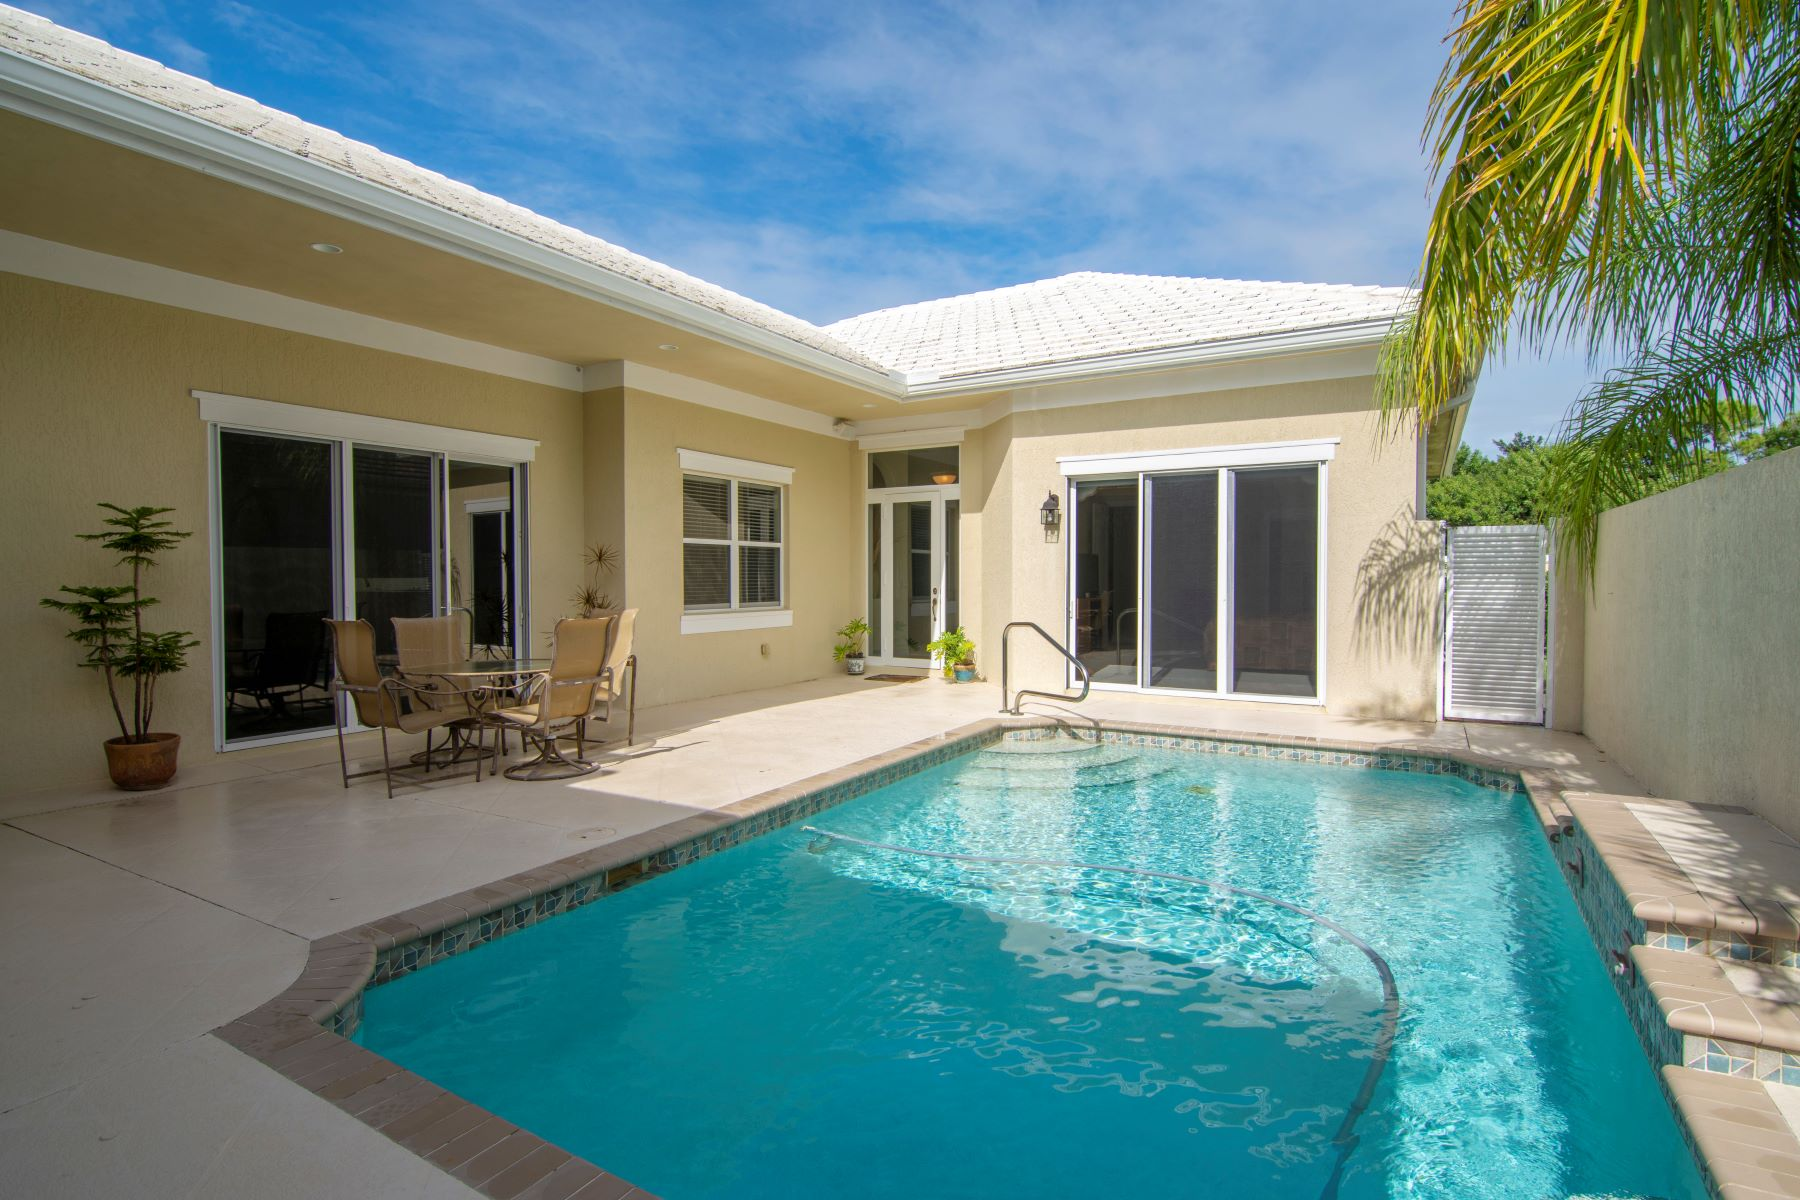 Single Family Homes for Sale at Four Bedroom Courtyard Pool Home 1025 Riverwind Circle Vero Beach, Florida 32967 United States